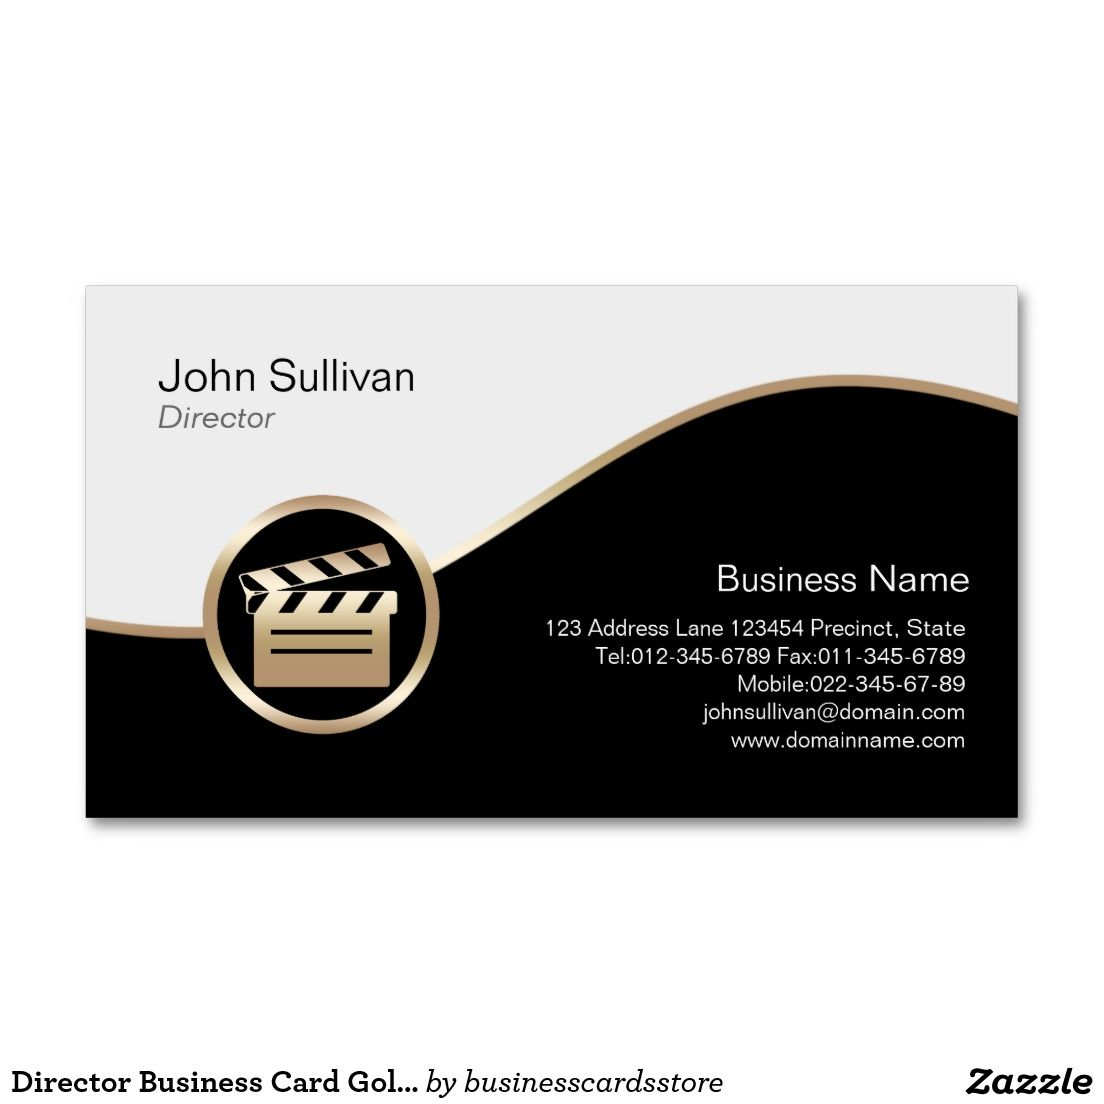 pin by business cards store on magician business cards pinterest business cards business and icons